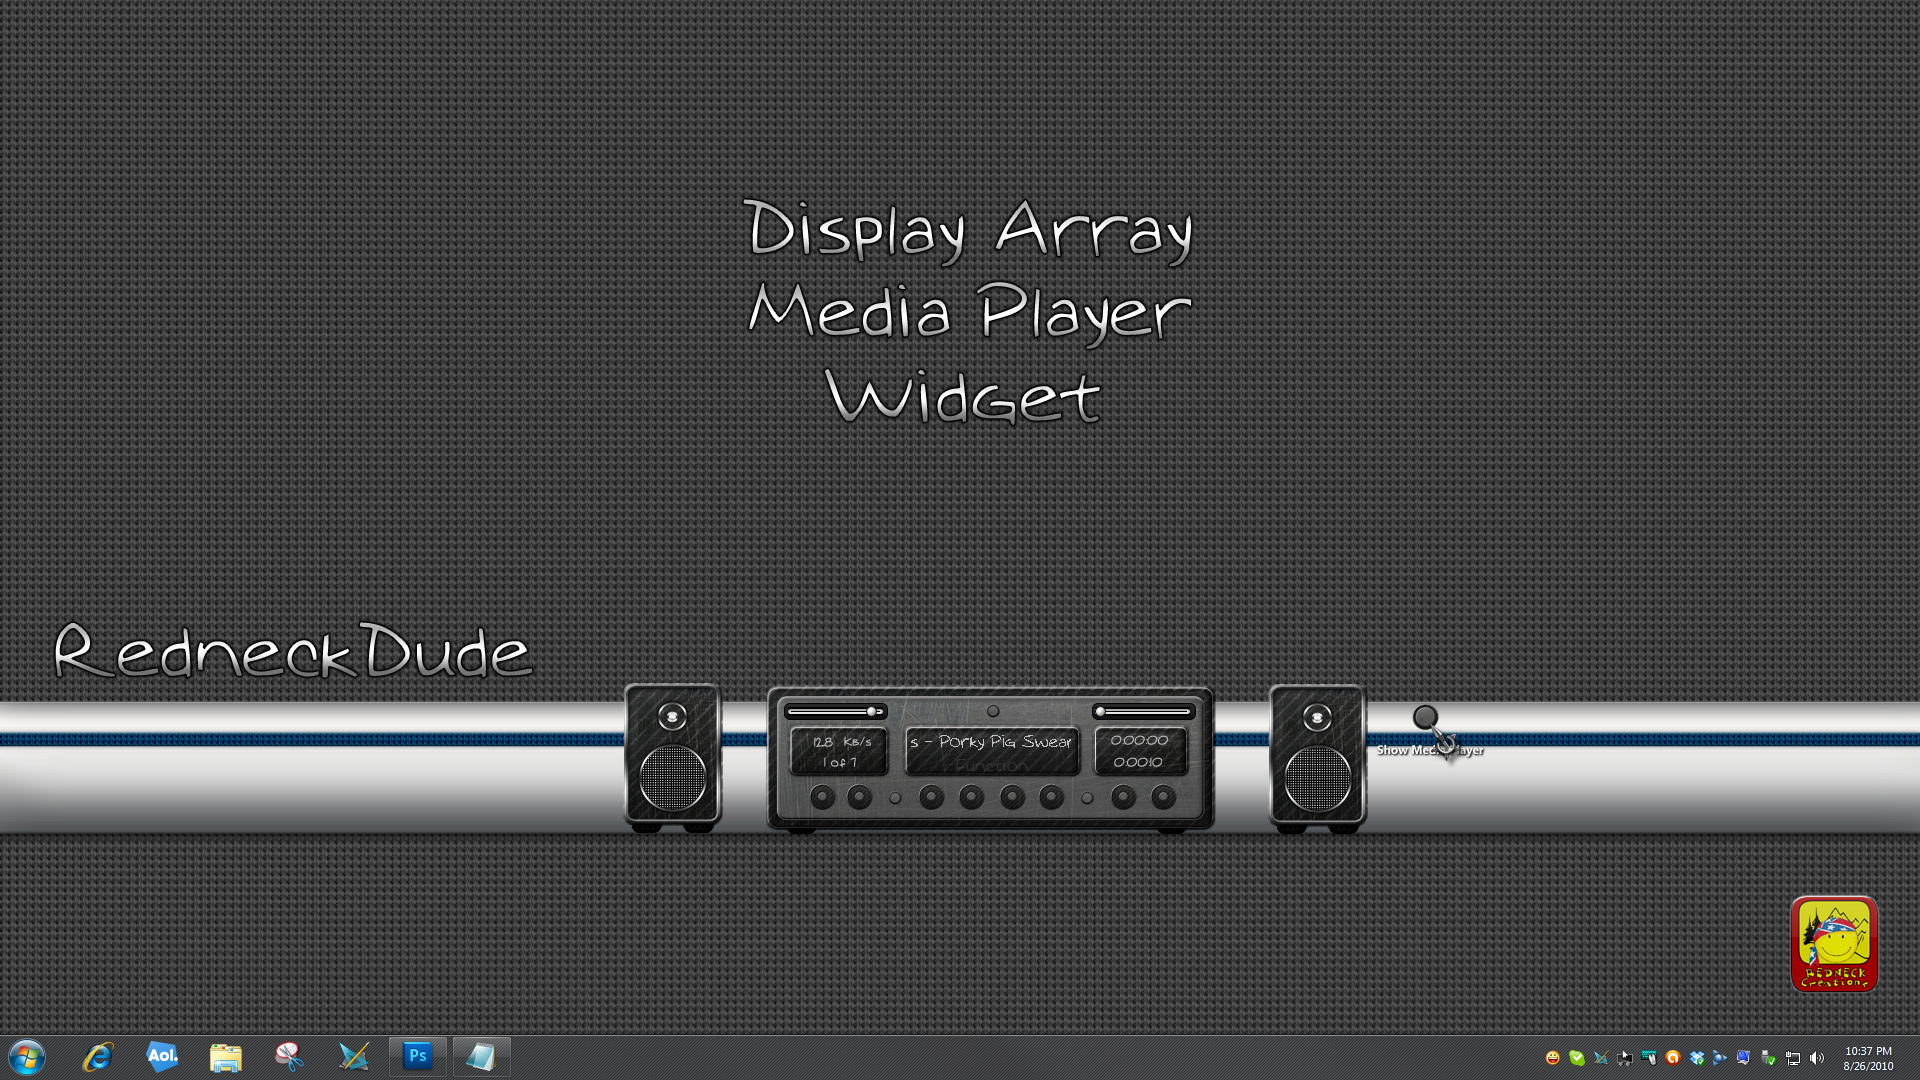 Display Array Media Player Widget